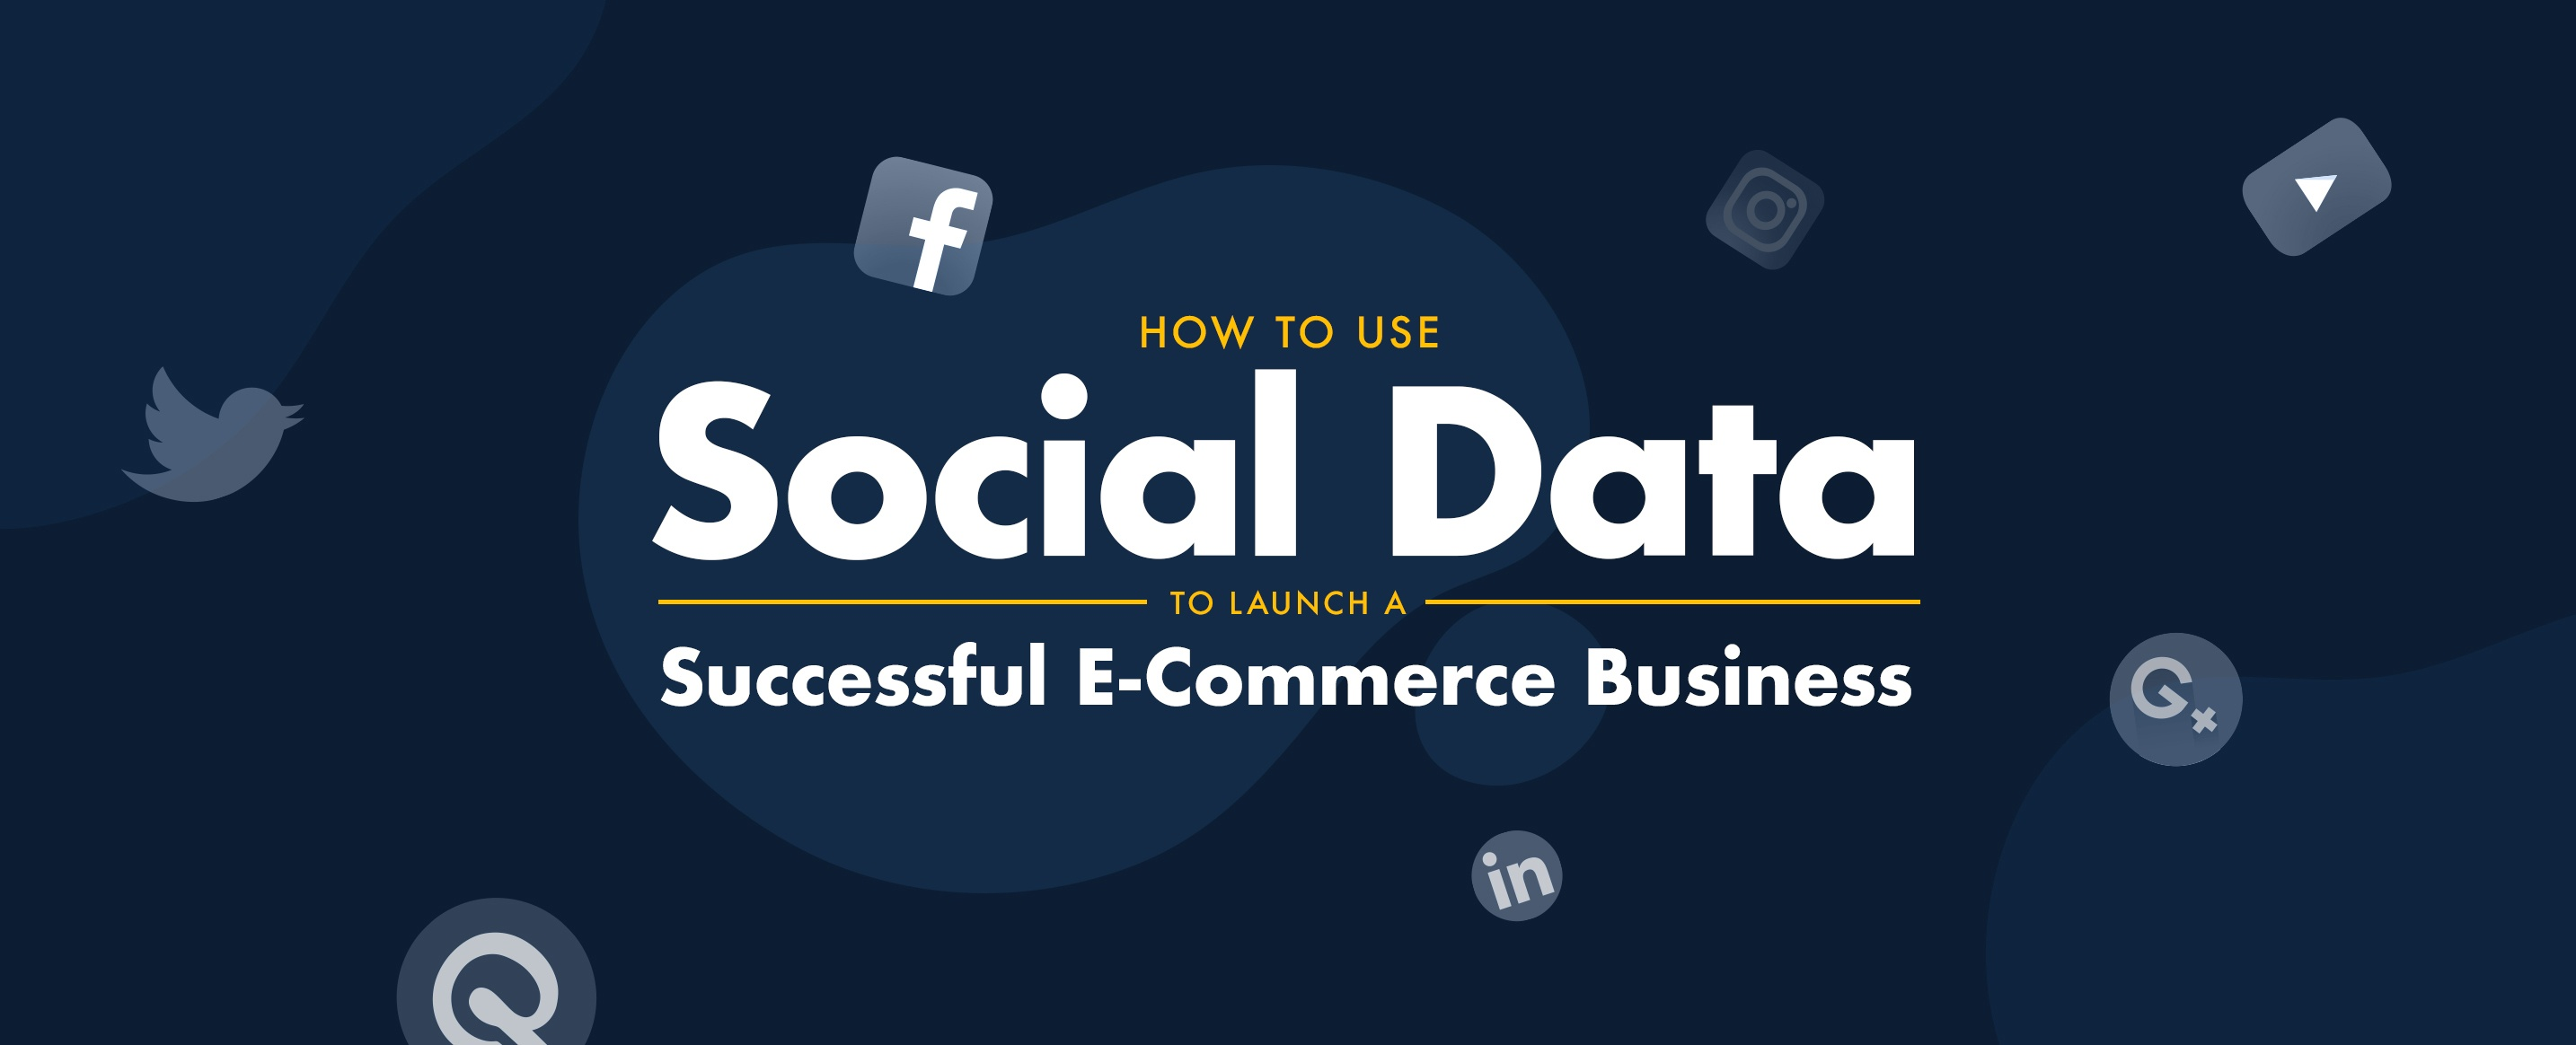 How-to-Use-Social-Data-to-Launch-a-Successful-E-Commerce-Business